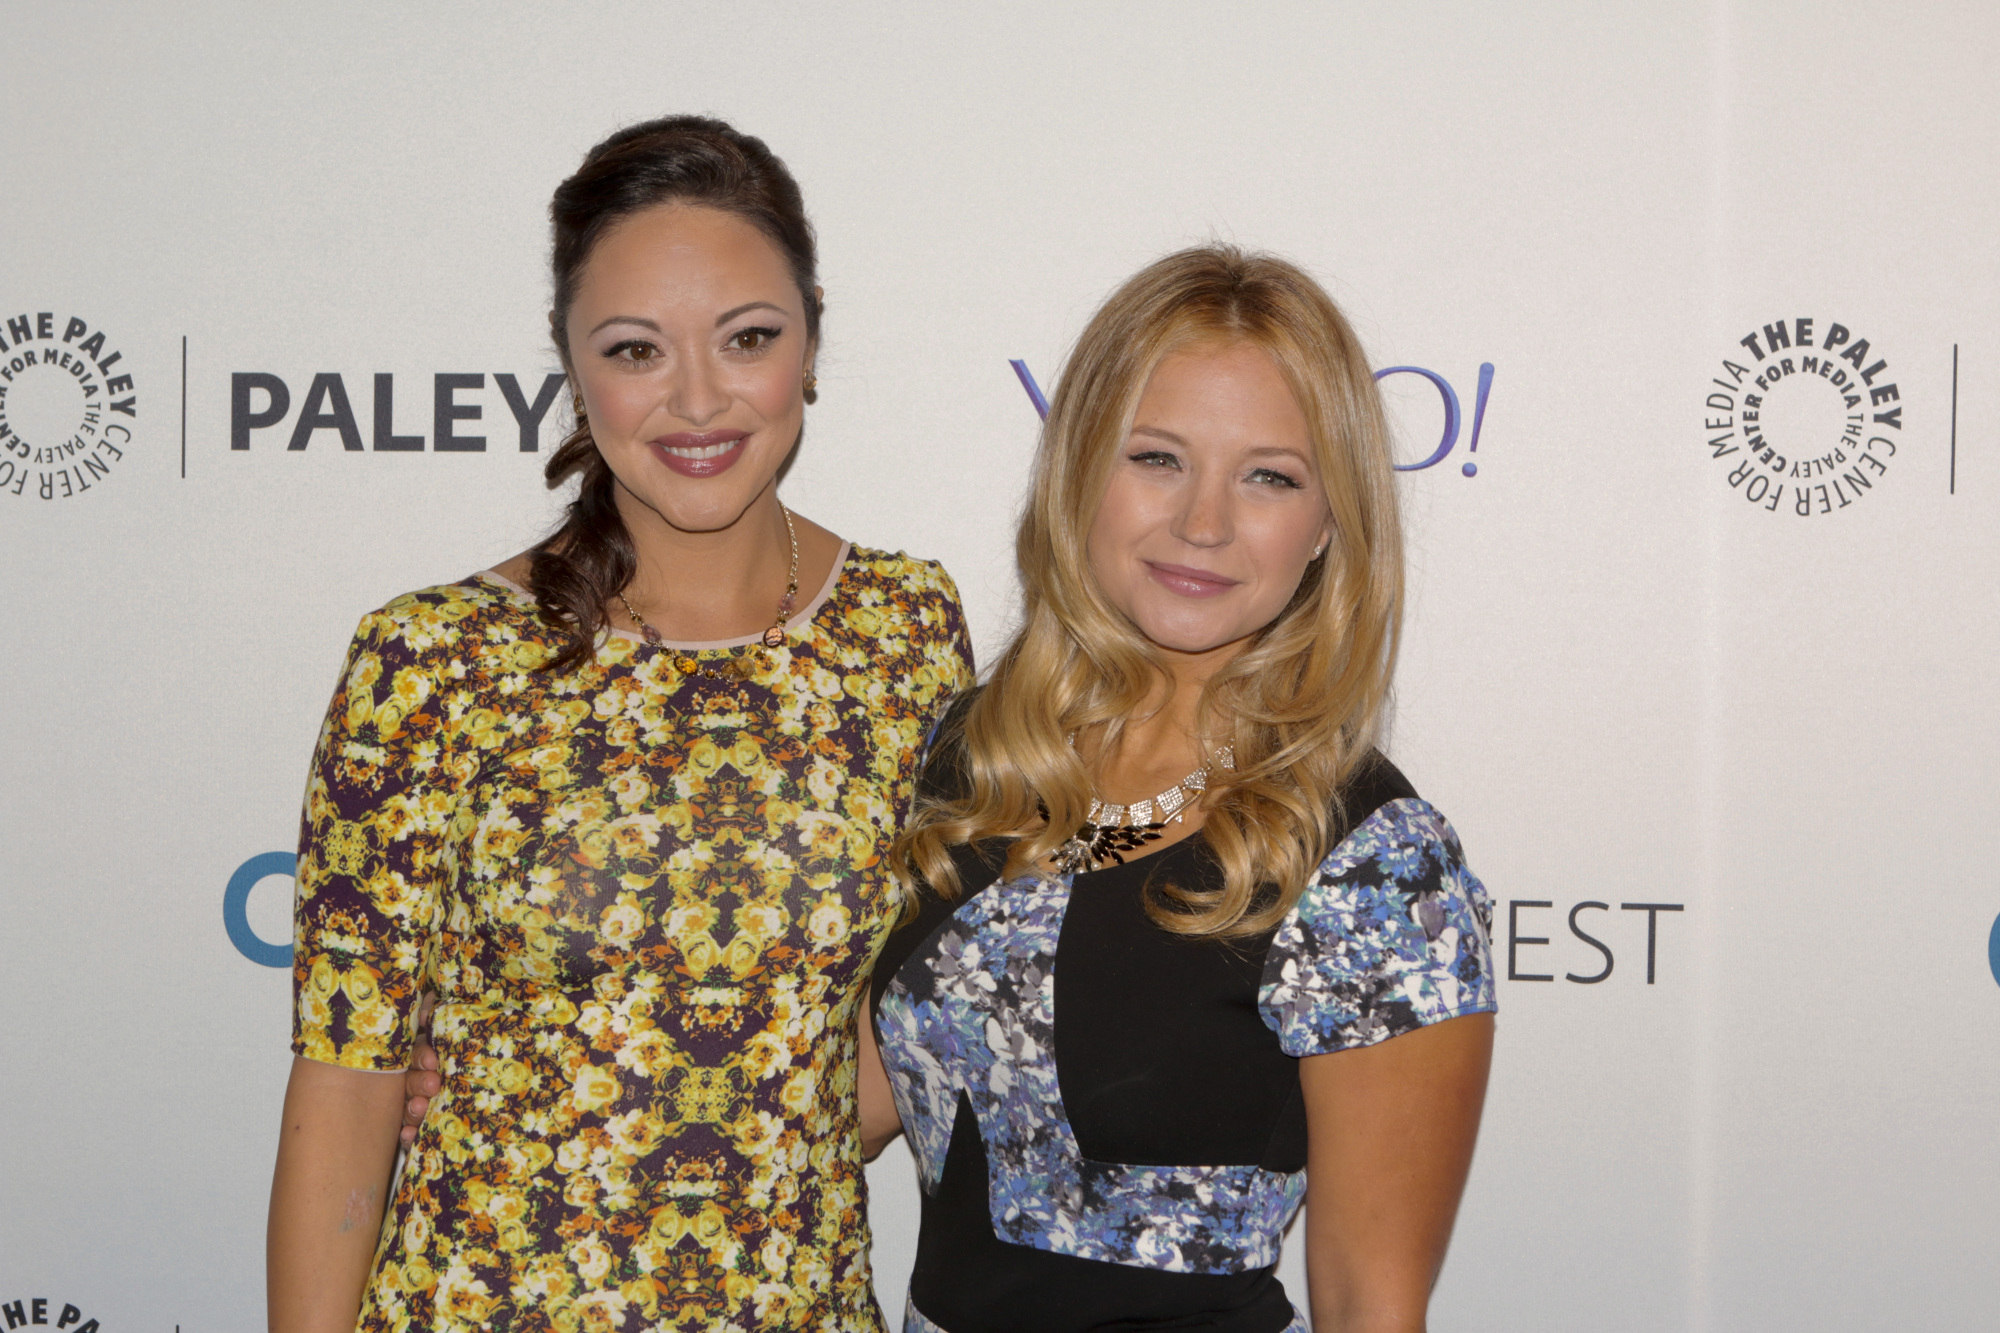 3. You can tell Marisa Ramirez and Vanessa Ray are totally besties off-camera.